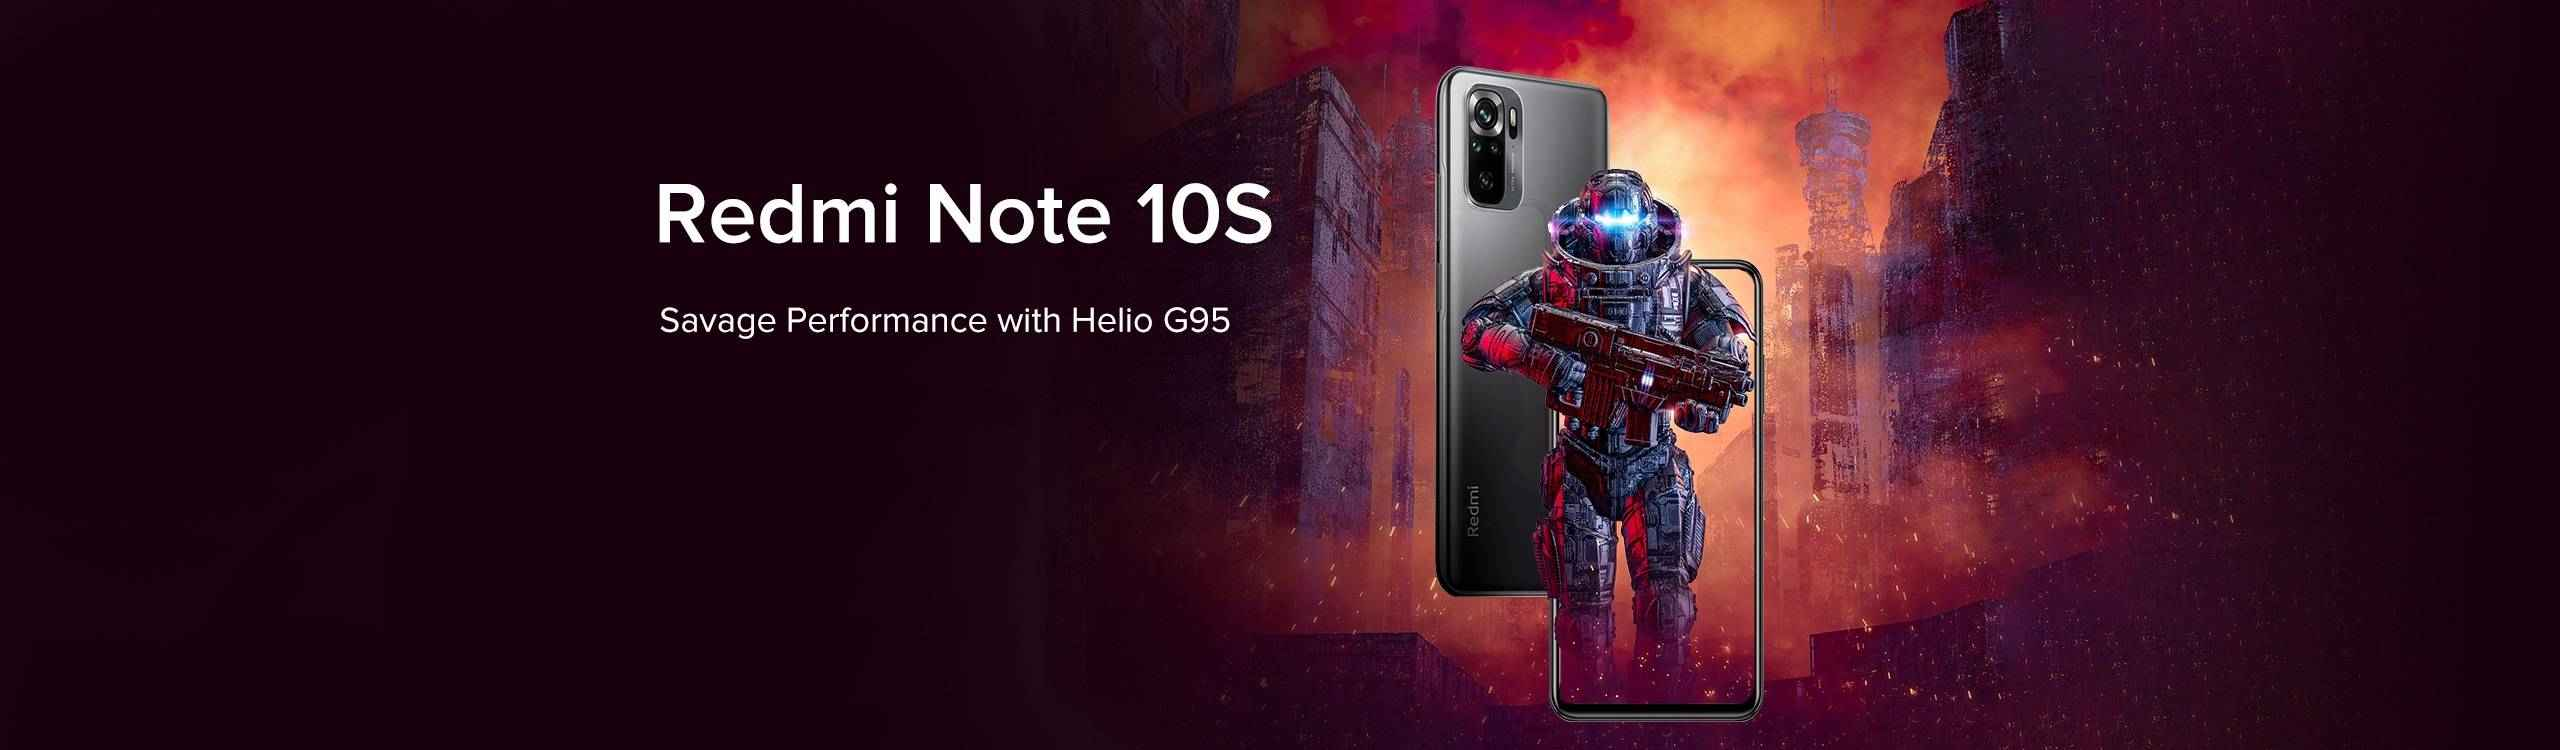 Redmi Note 10s Specifications